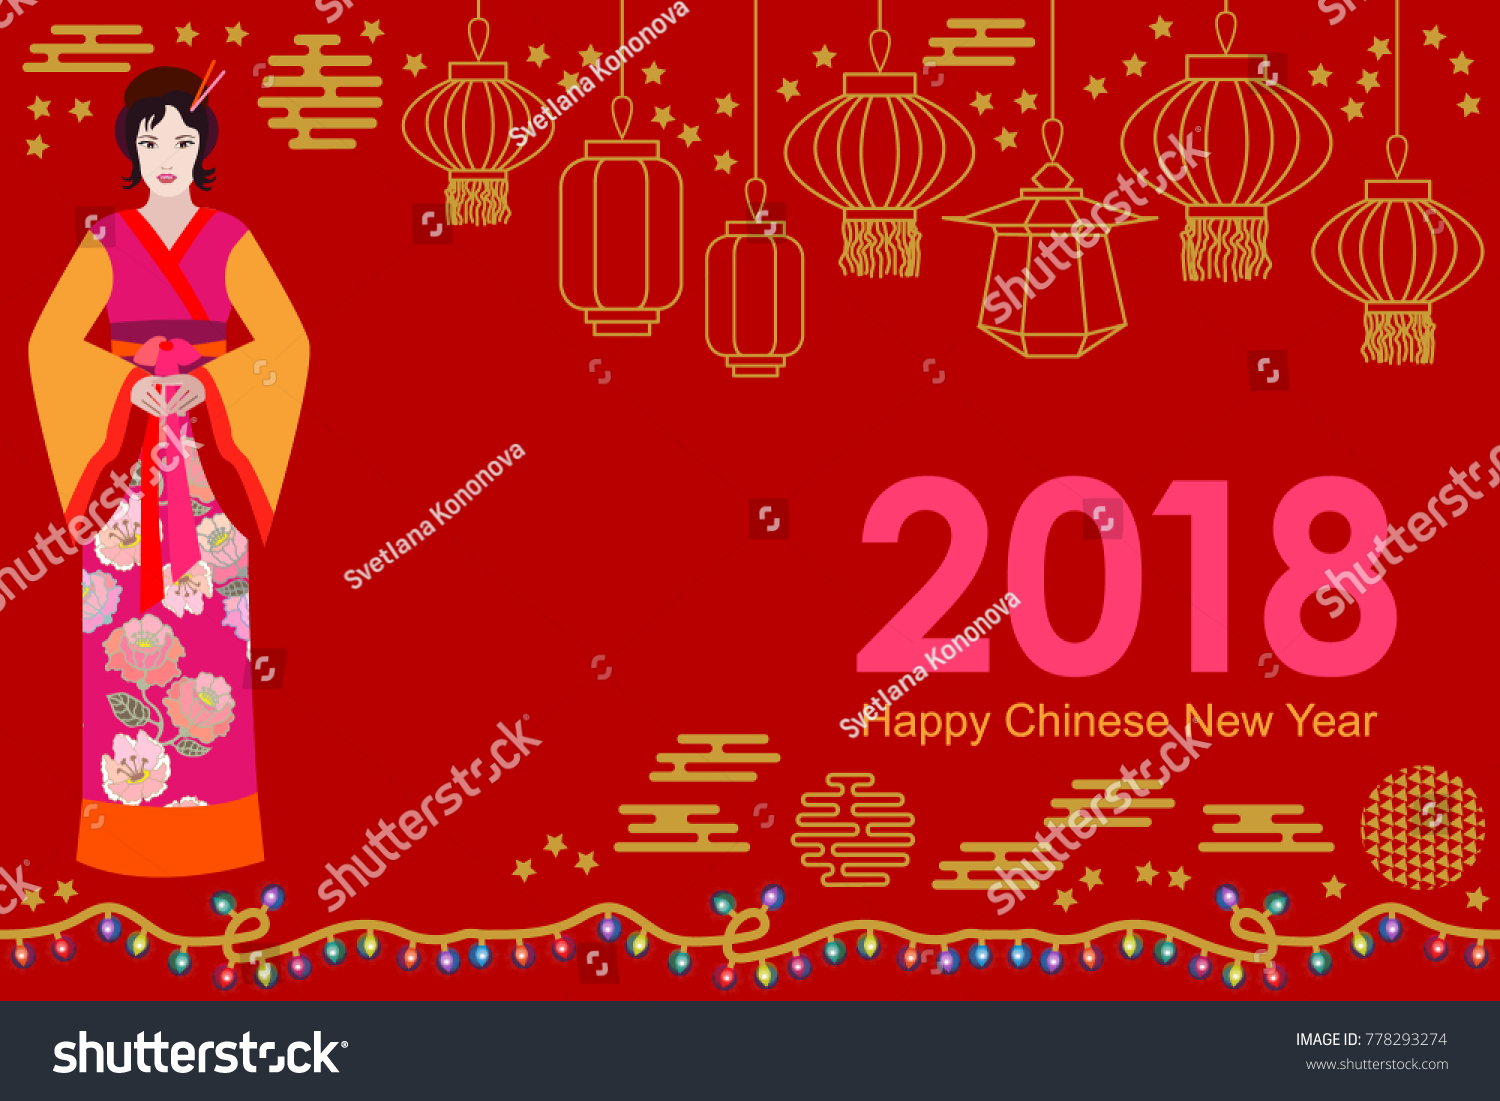 happy chinese new year card beautiful asian girl in traditional dresses and oriental lanterns on